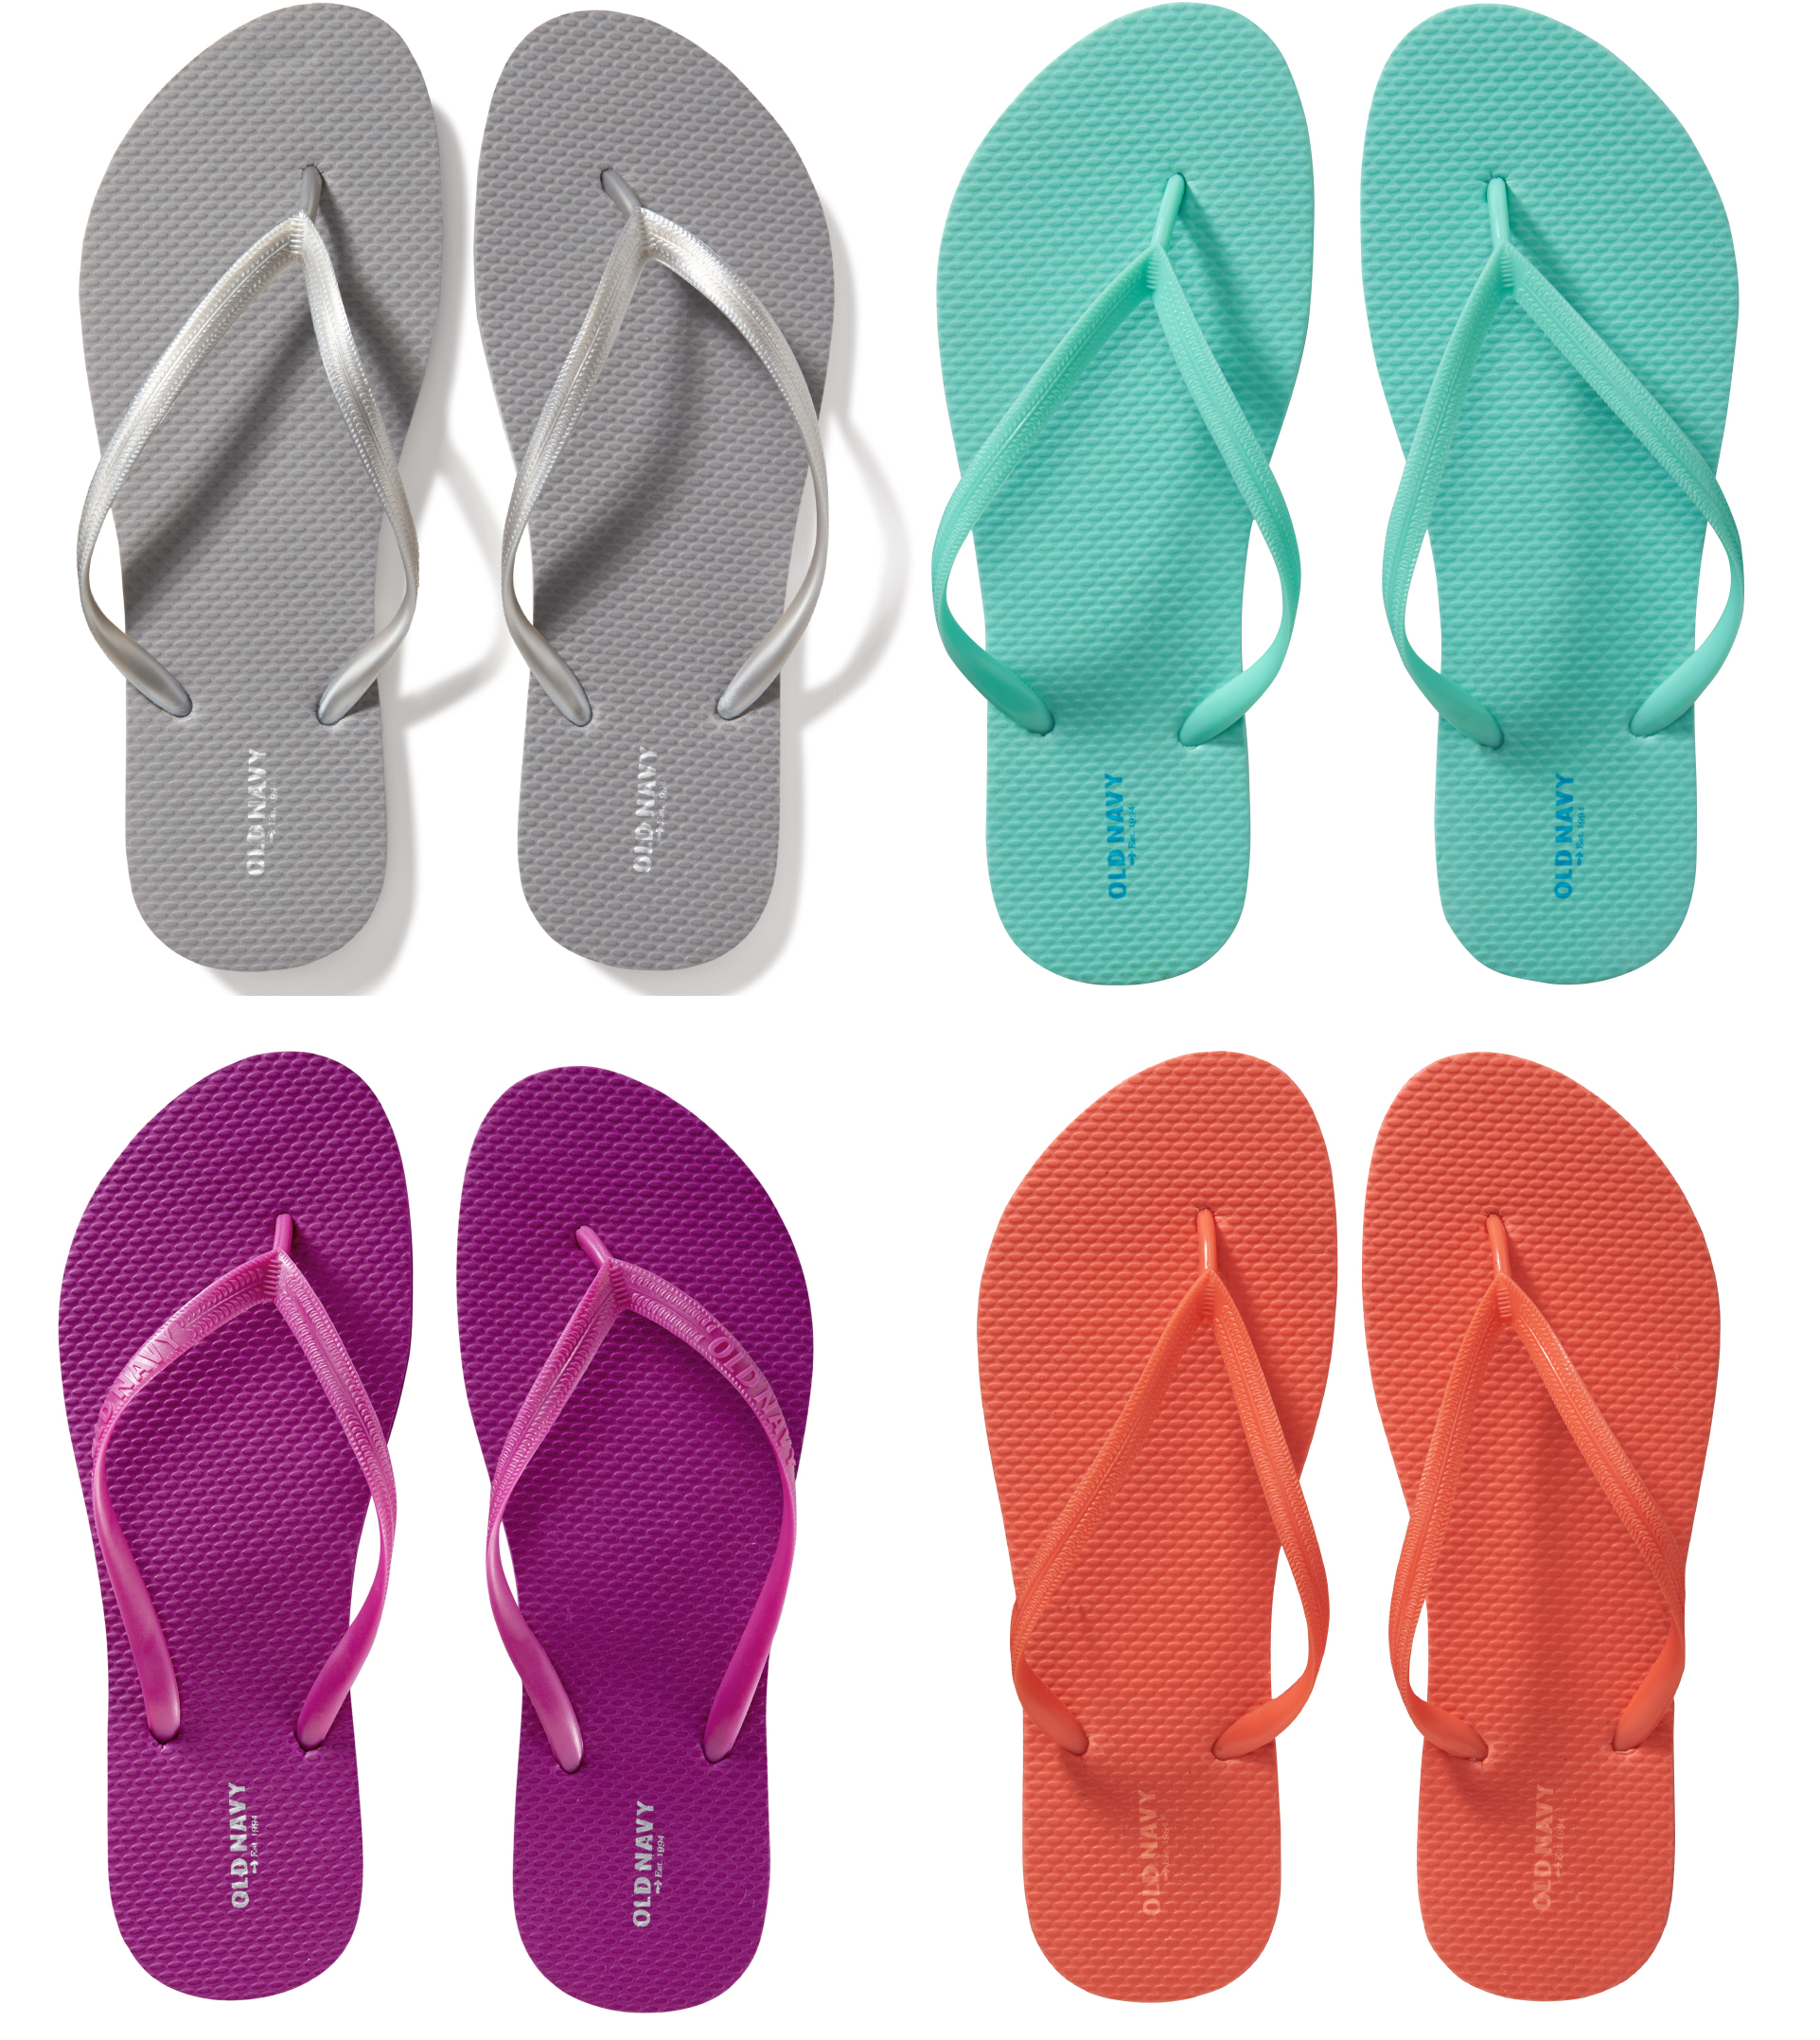 fa8137e09 Old Navy Flip-Flops Will Go on Sale for  1 on Saturday